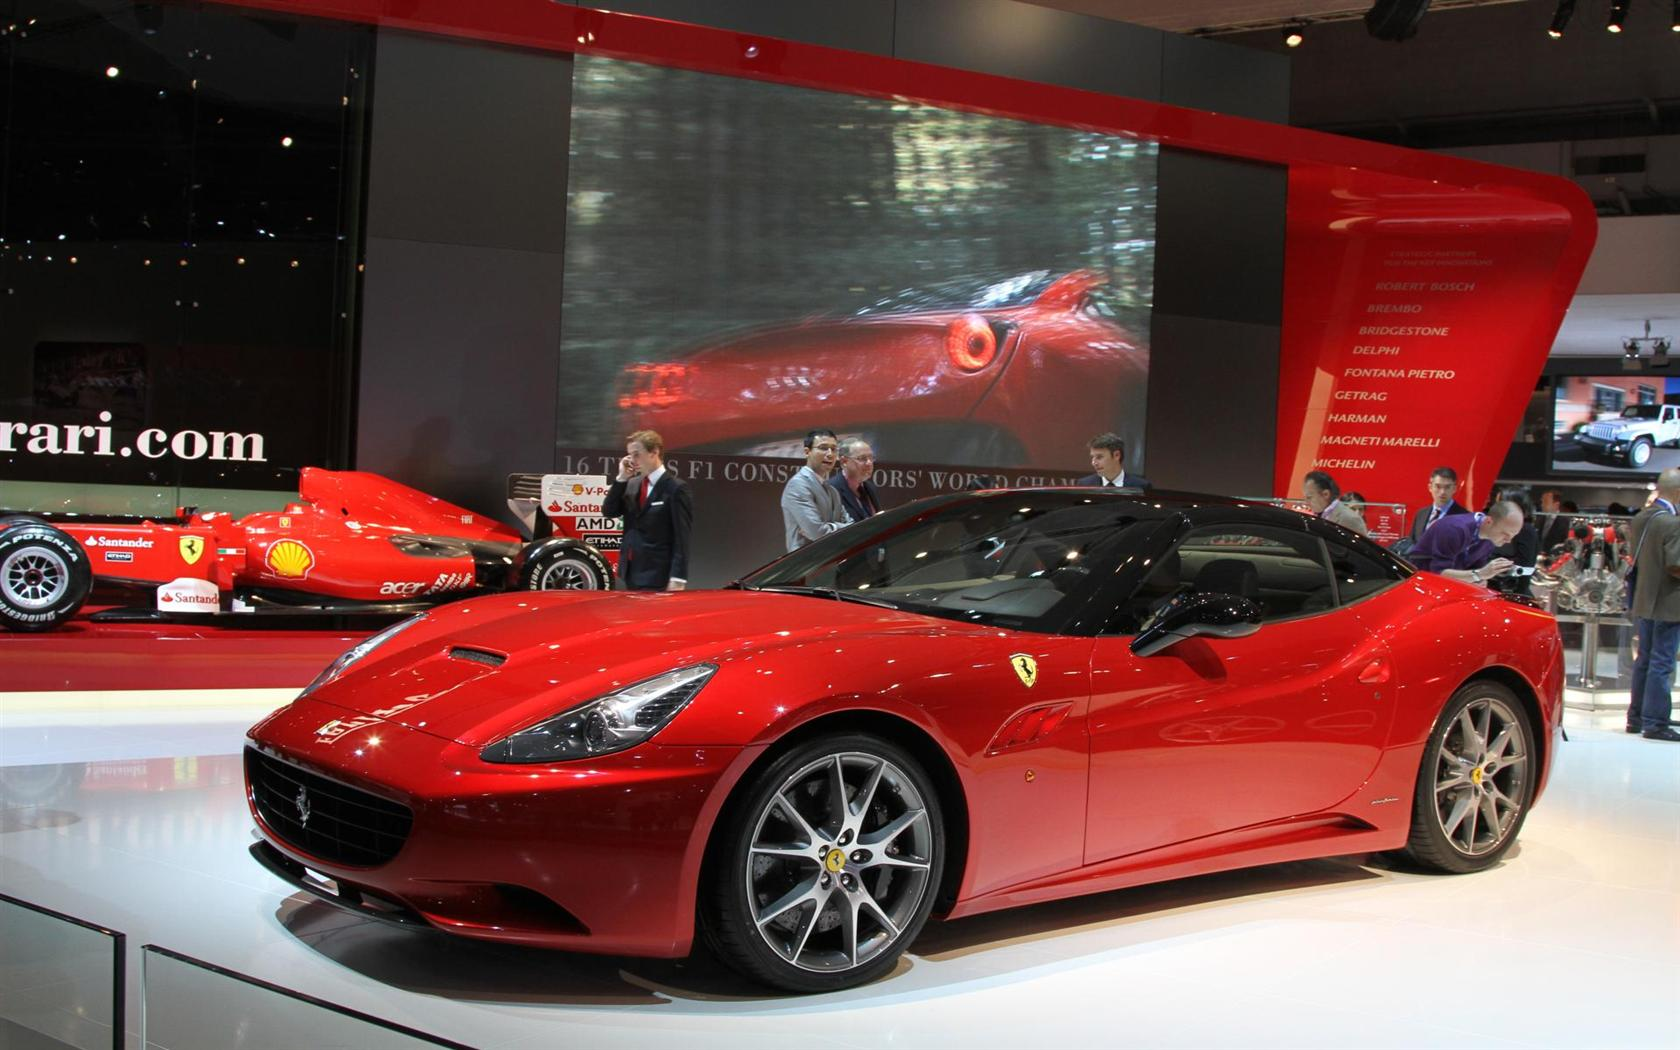 Supercar Ferrari California